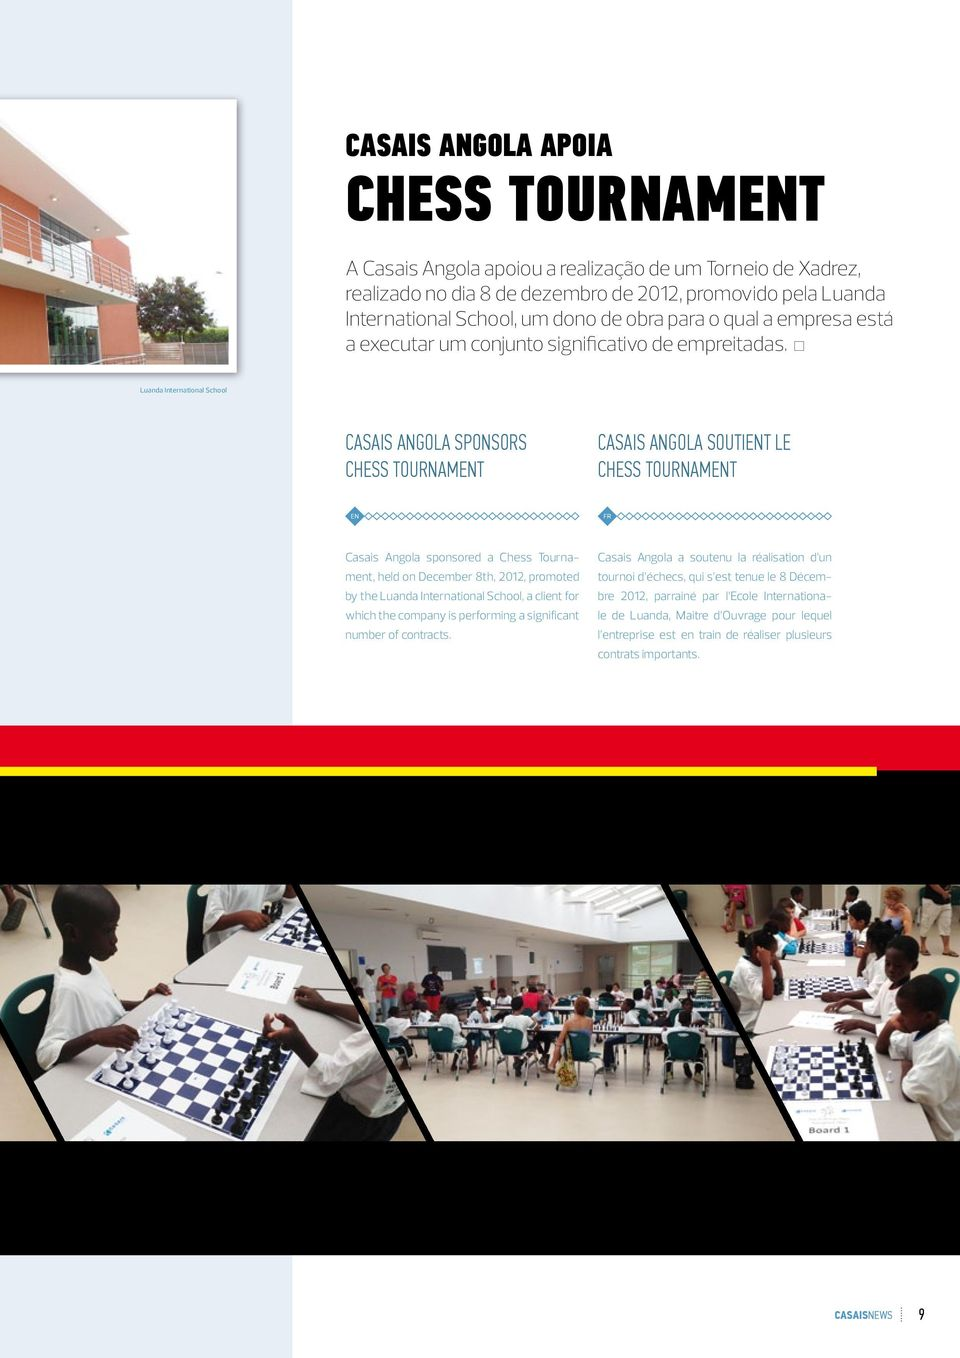 Luanda International School CASAIS ANGOLA SPONSORS CHESS TOURNAMENT CASAIS ANGOLA SOUTIENT LE CHESS TOURNAMENT Casais Angola sponsored a Chess Tournament, held on December 8th, 2012, promoted by the